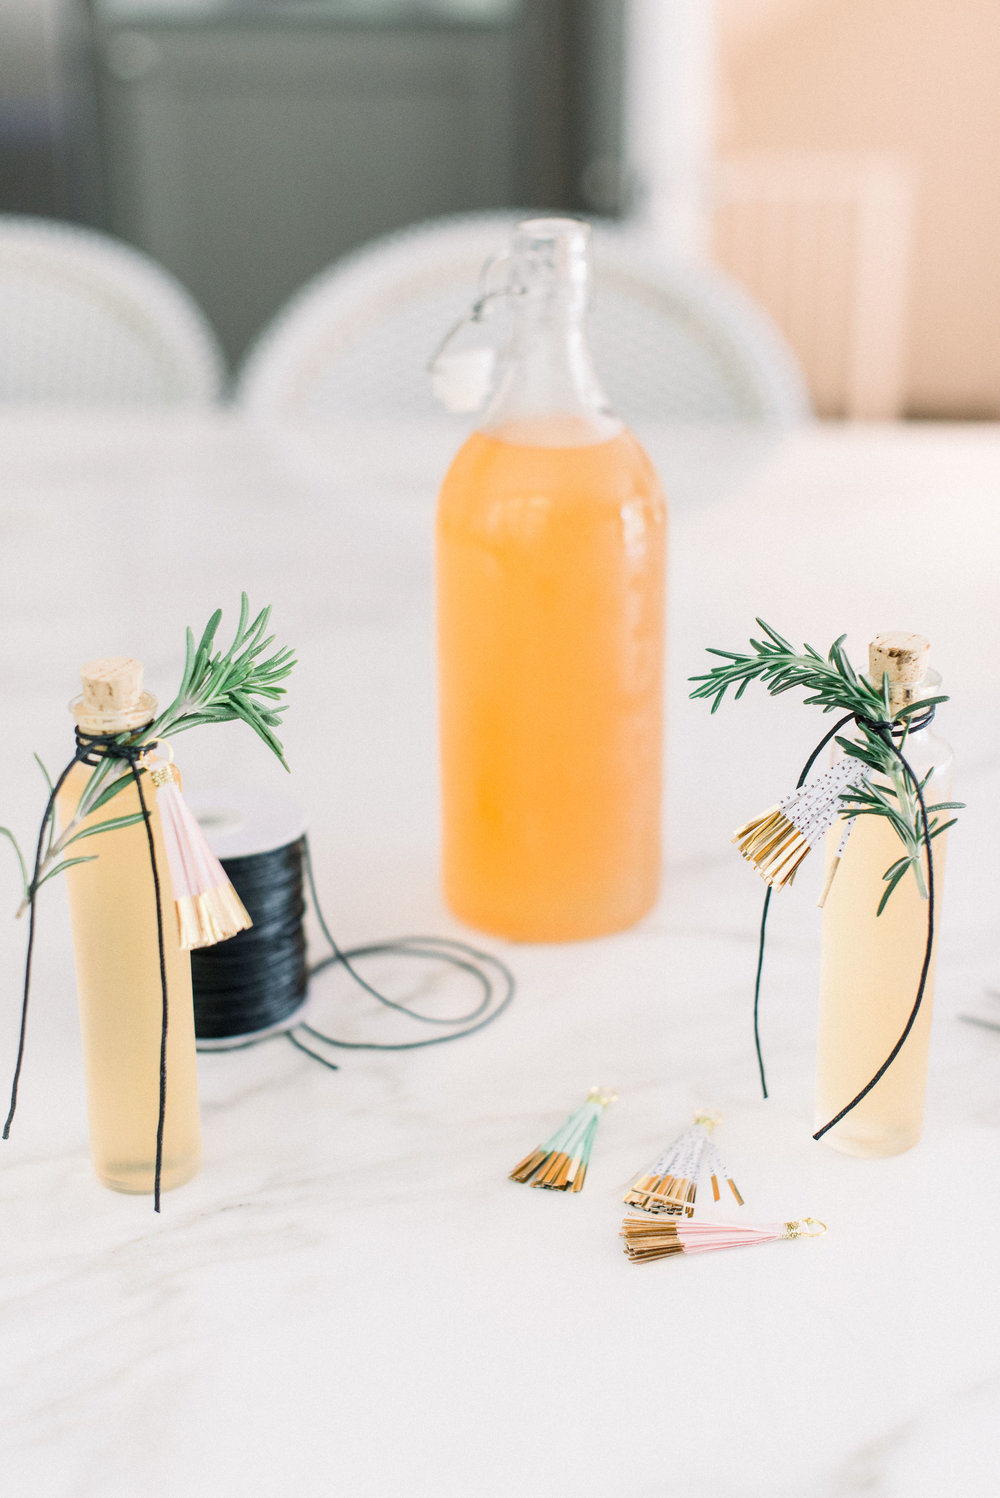 rosemary-simple-syrup-2